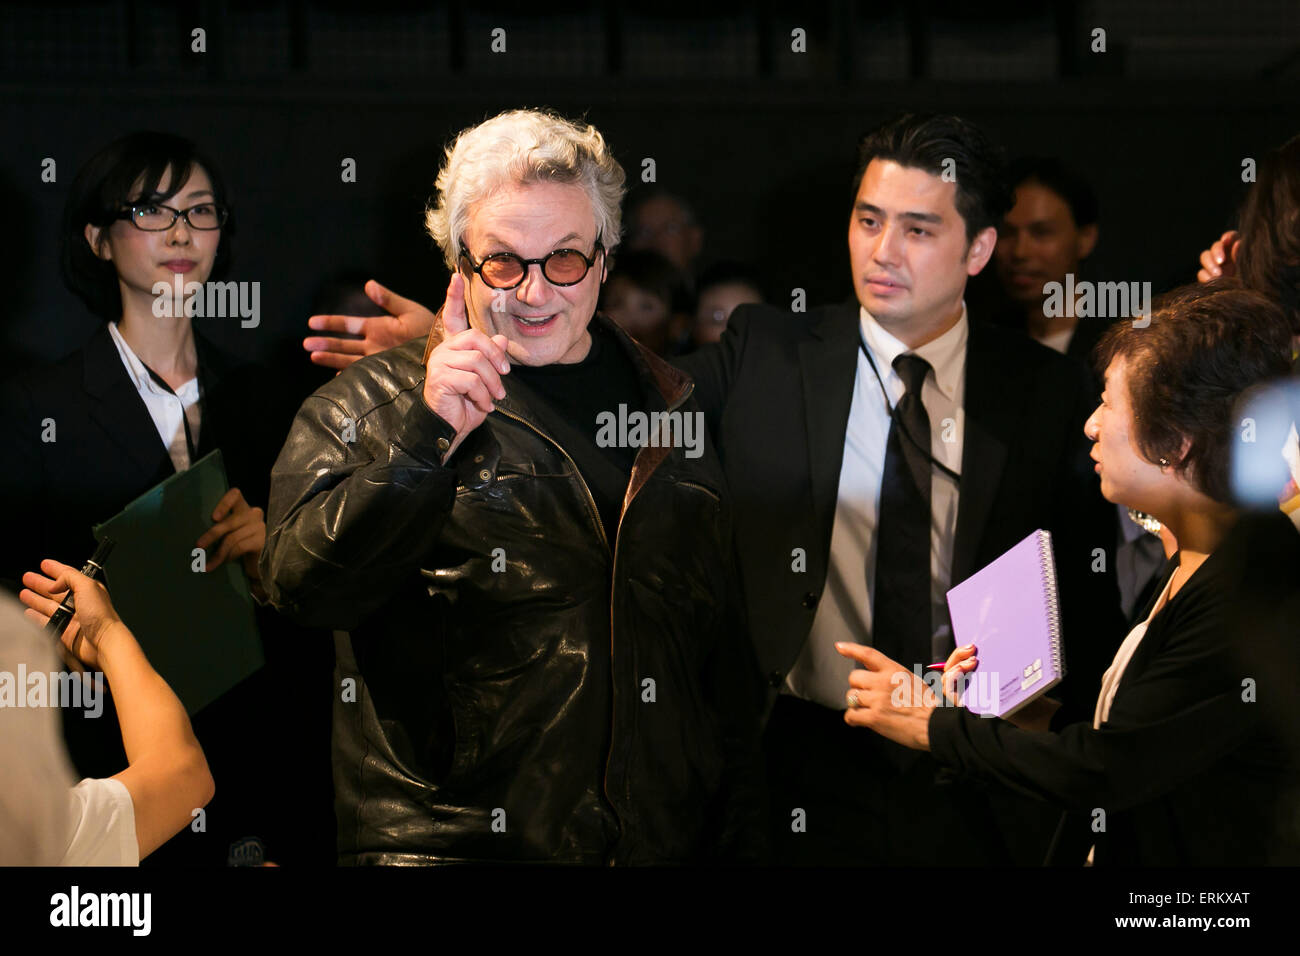 Australian film director George Miller attends the Japan premiere for the film ''Mad Max: Fury Road'' - Stock Image